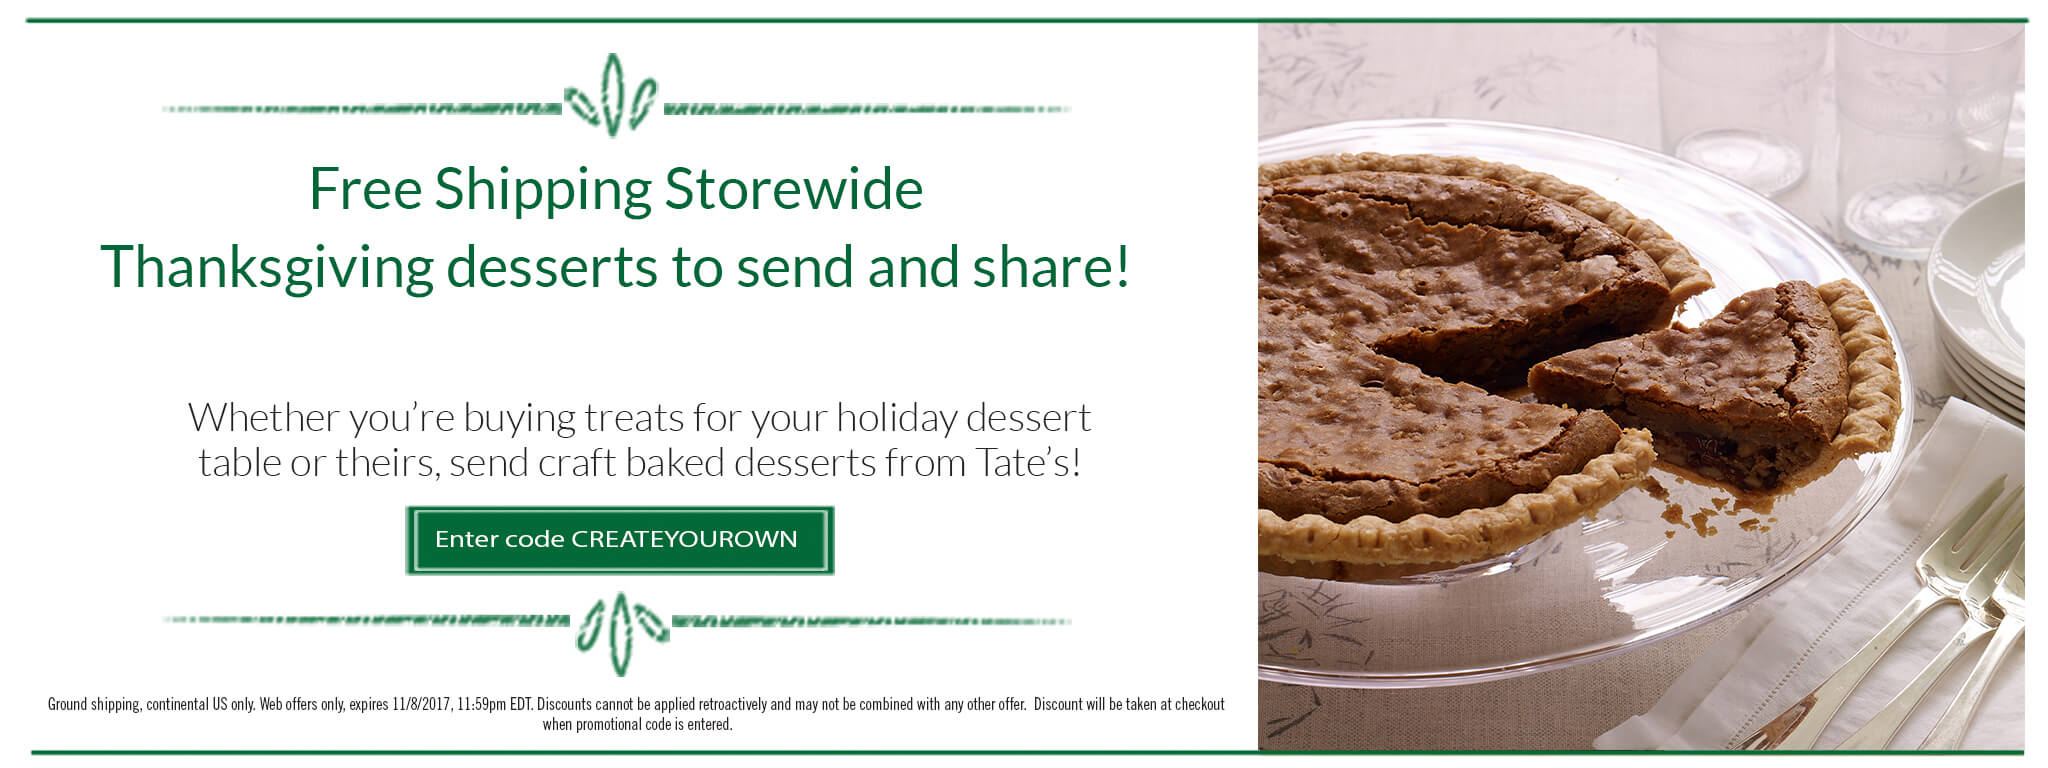 Free Shipping Storewide. Thanksgiving Desserts to Love and Share!